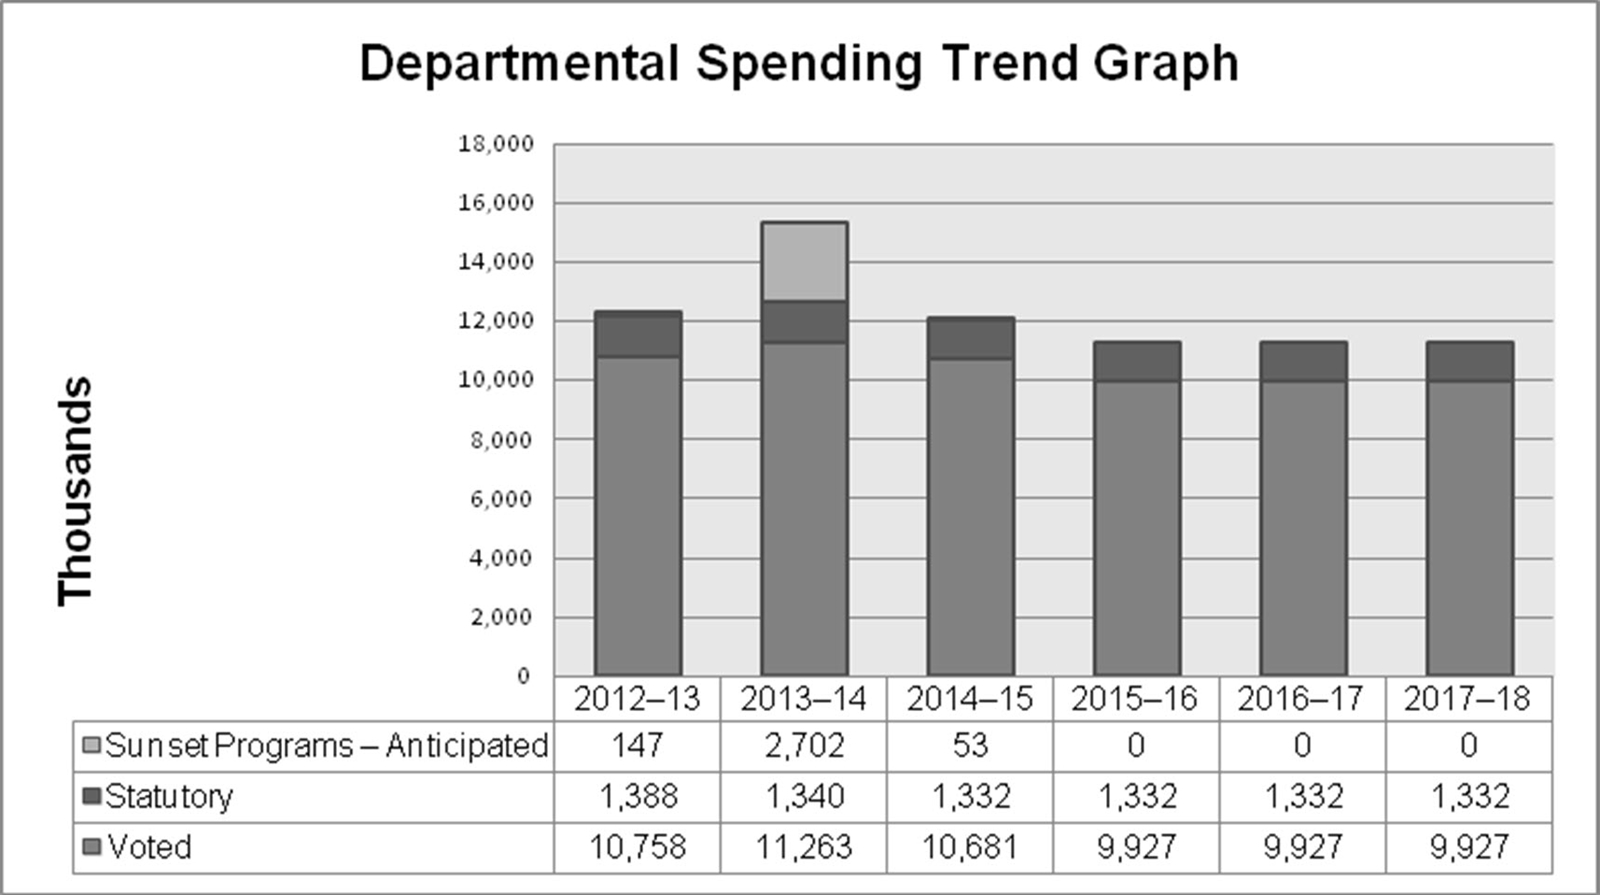 Departmental Spending Trend